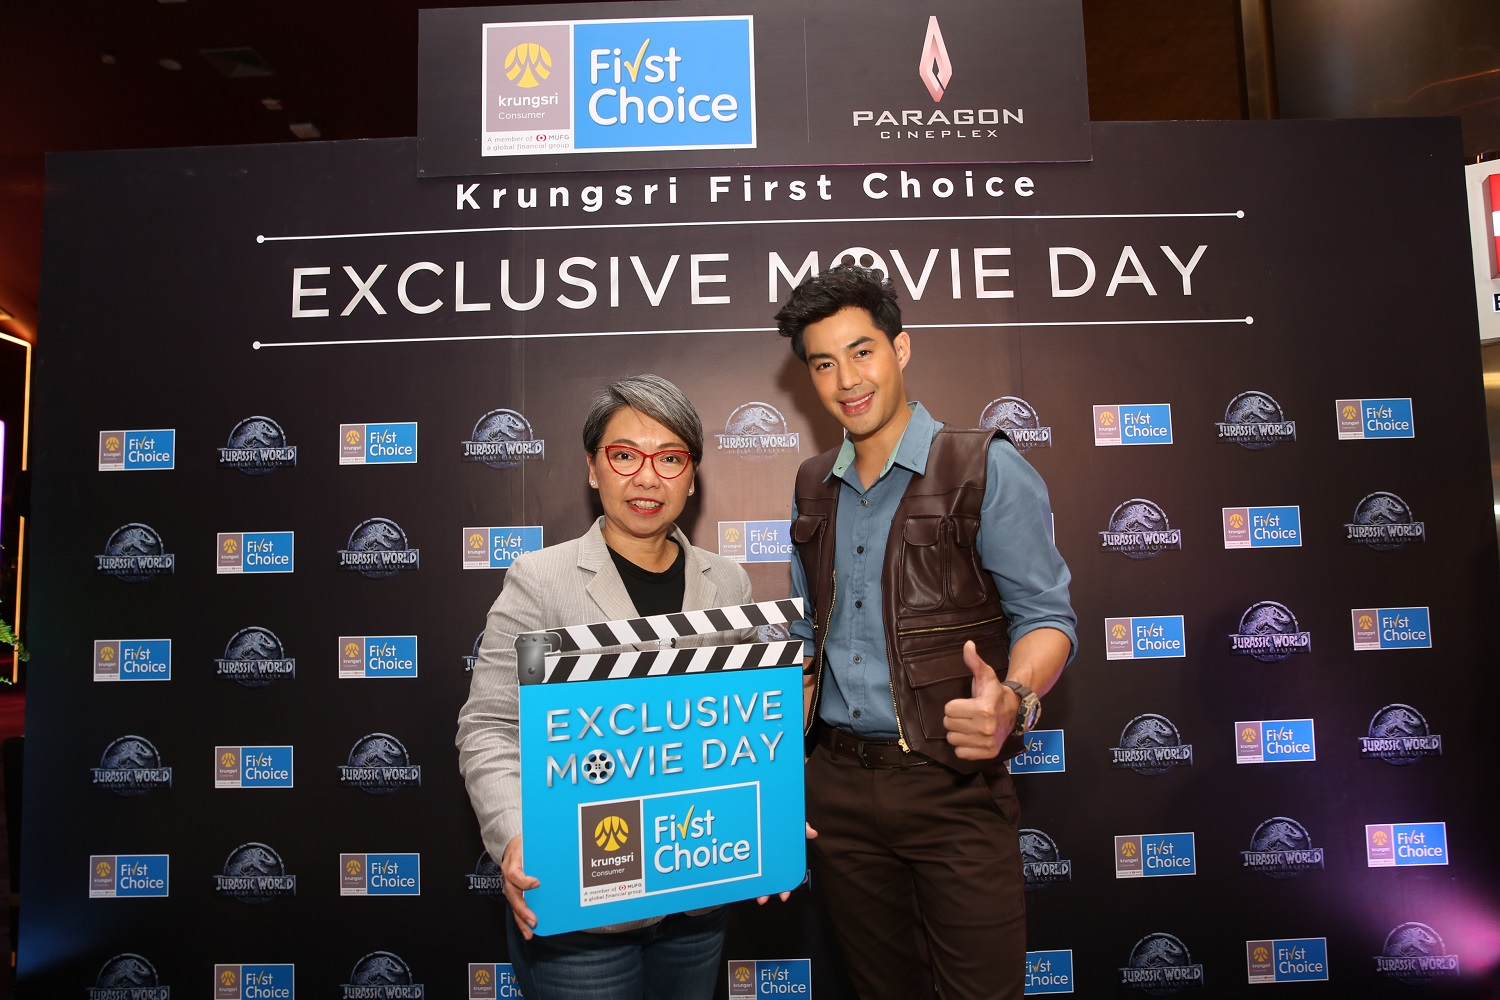 Krungsri First Choice Exclusive Movie Day 2018